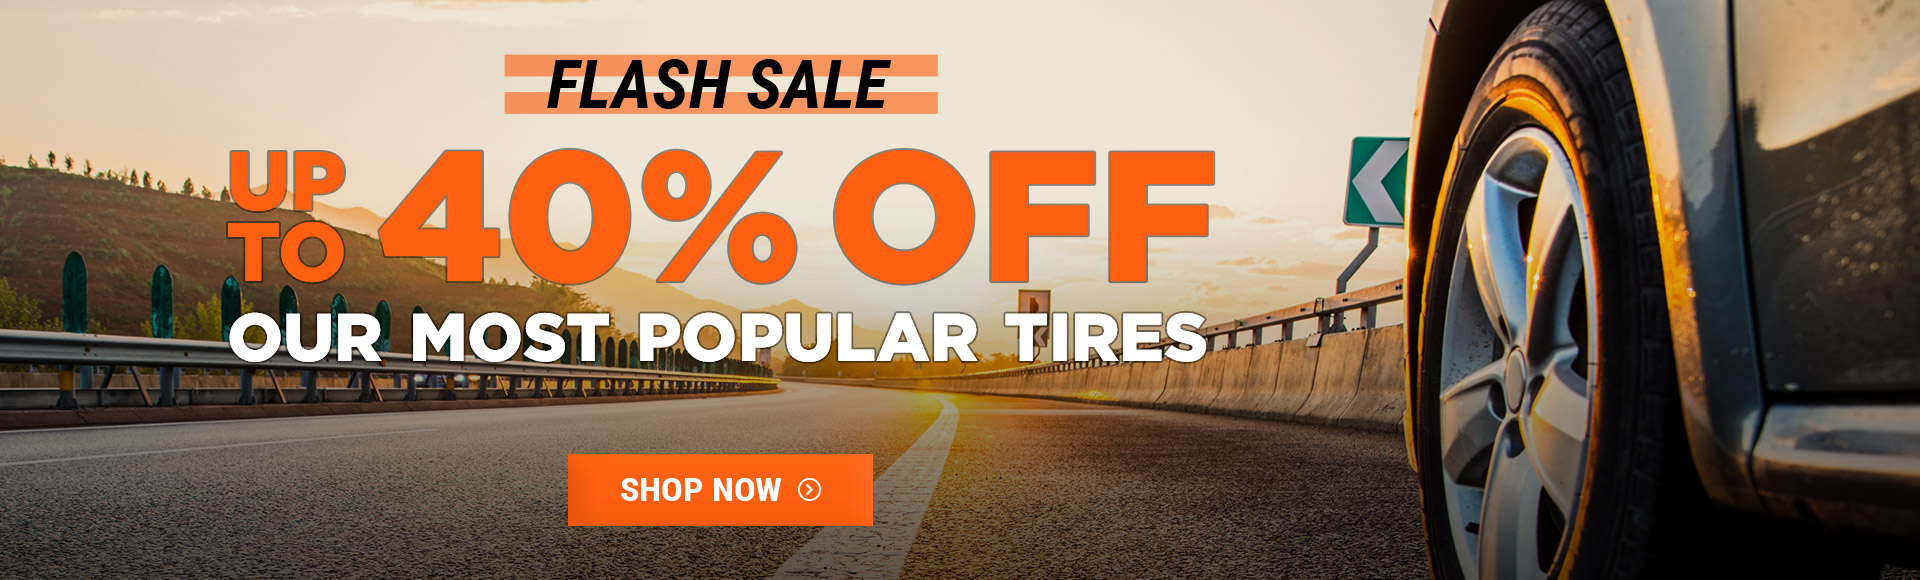 Flash Sale - up to 40% off our most popular tires